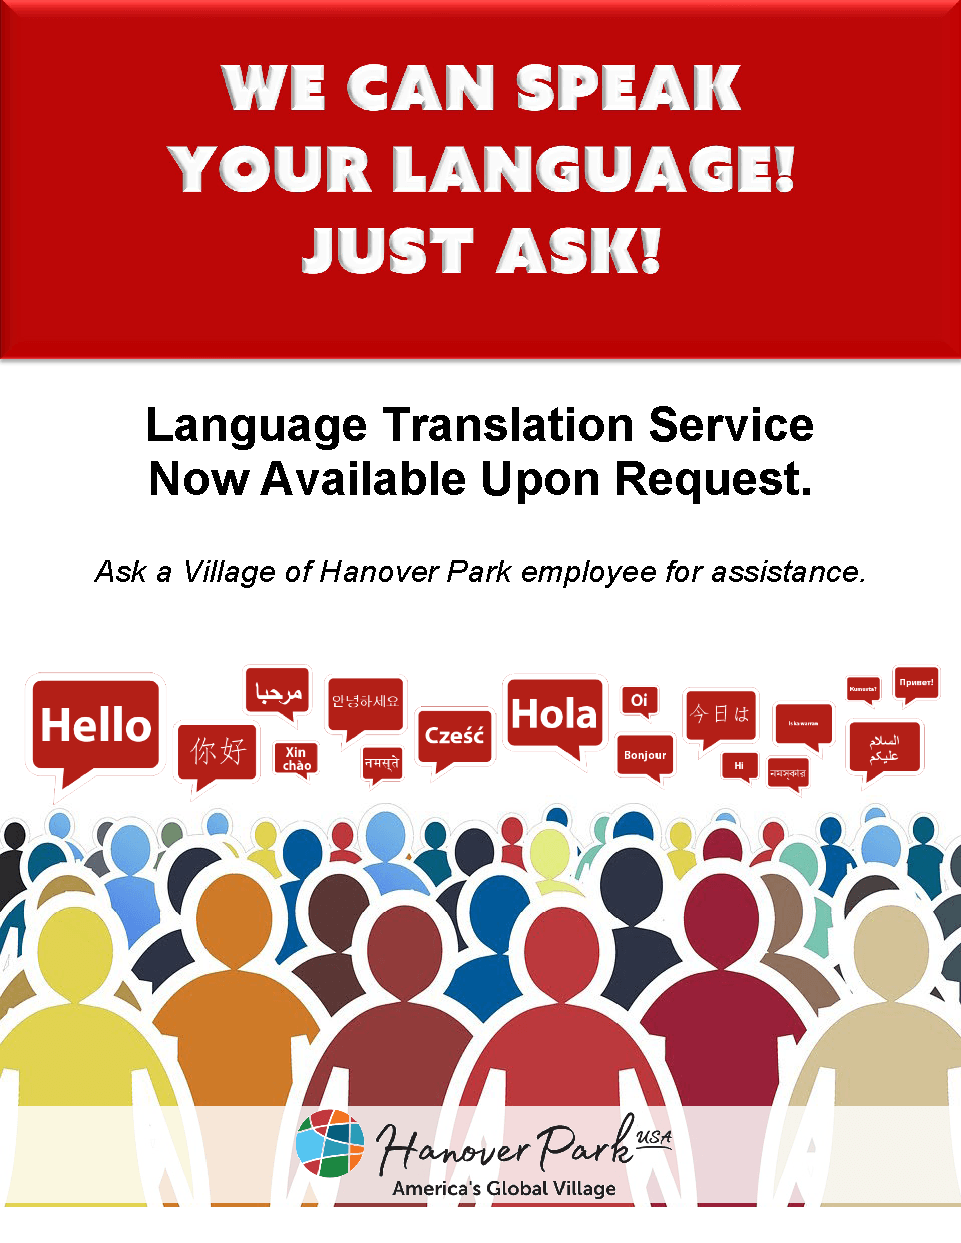 Language Translation Service Flyer